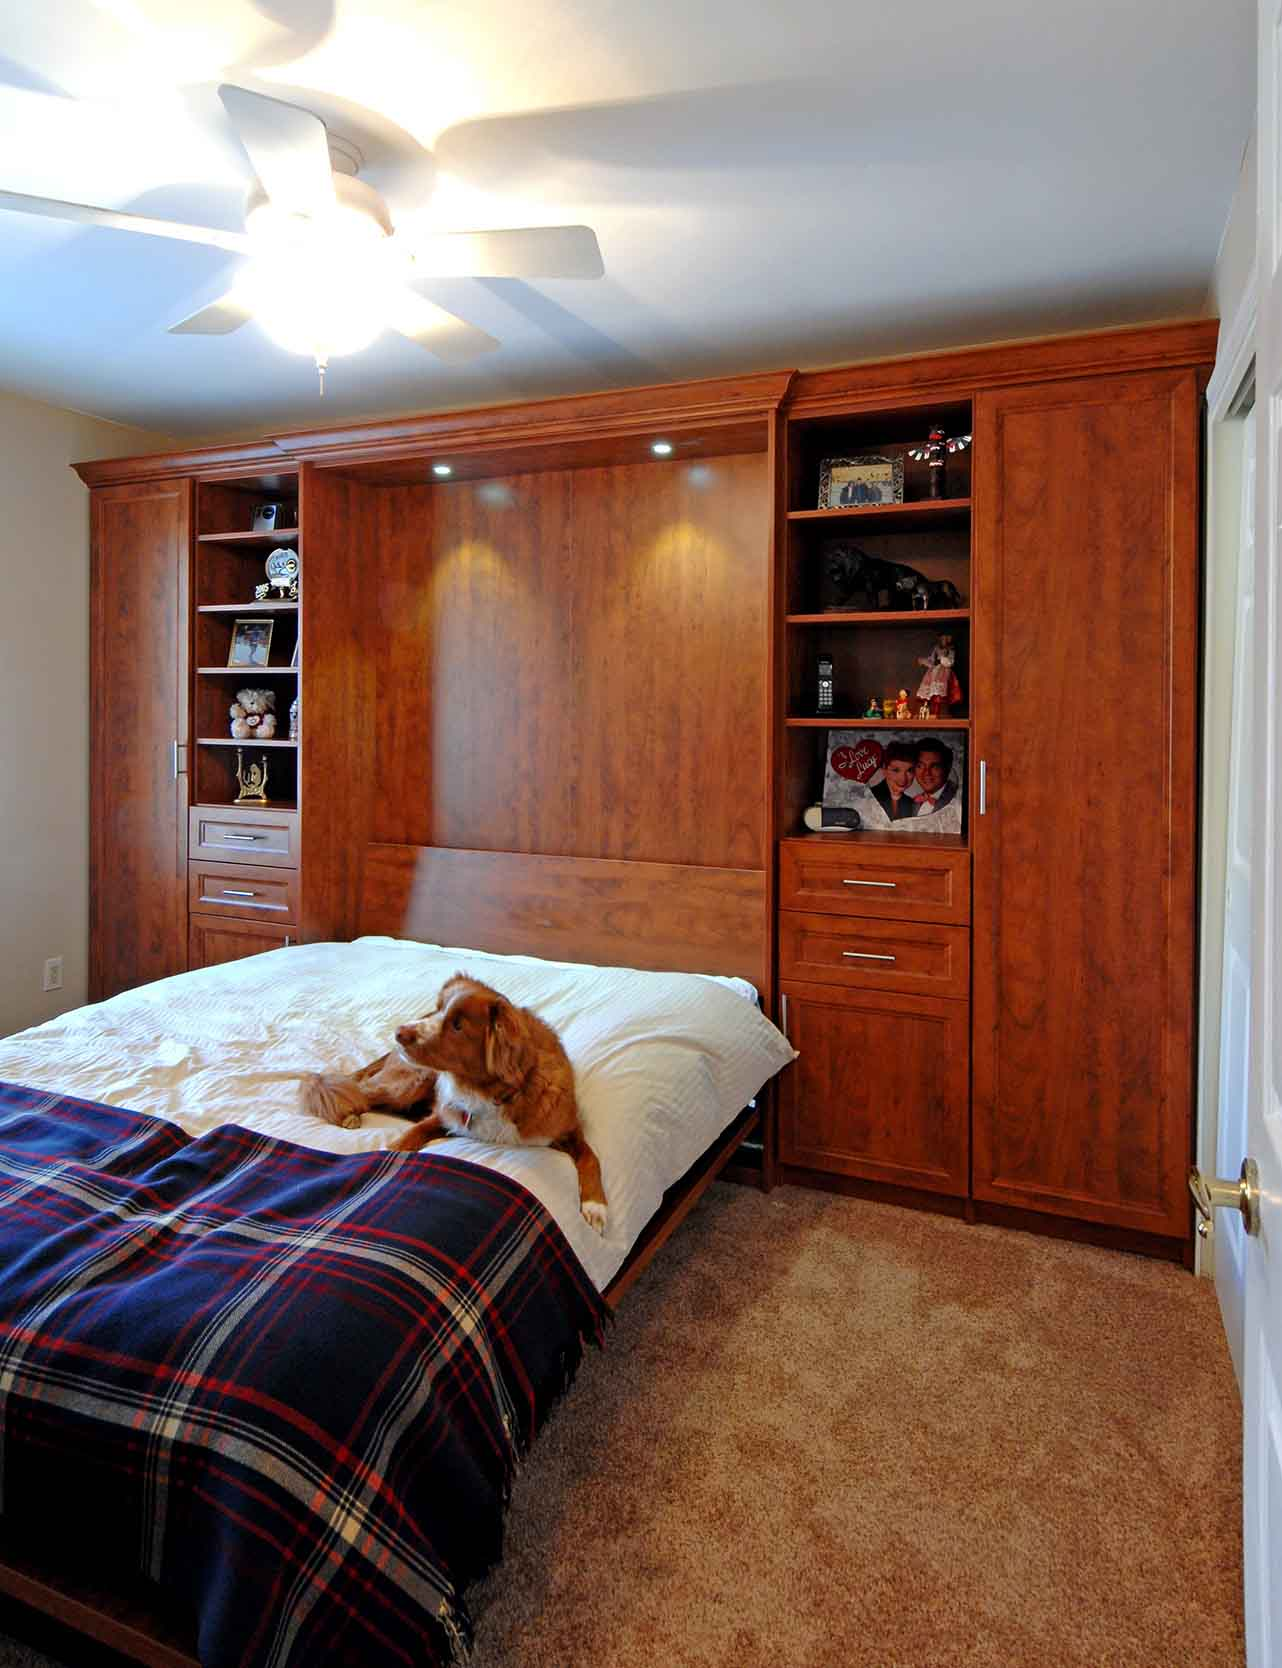 Dog laying on pull down queen-sized Murphy Bed